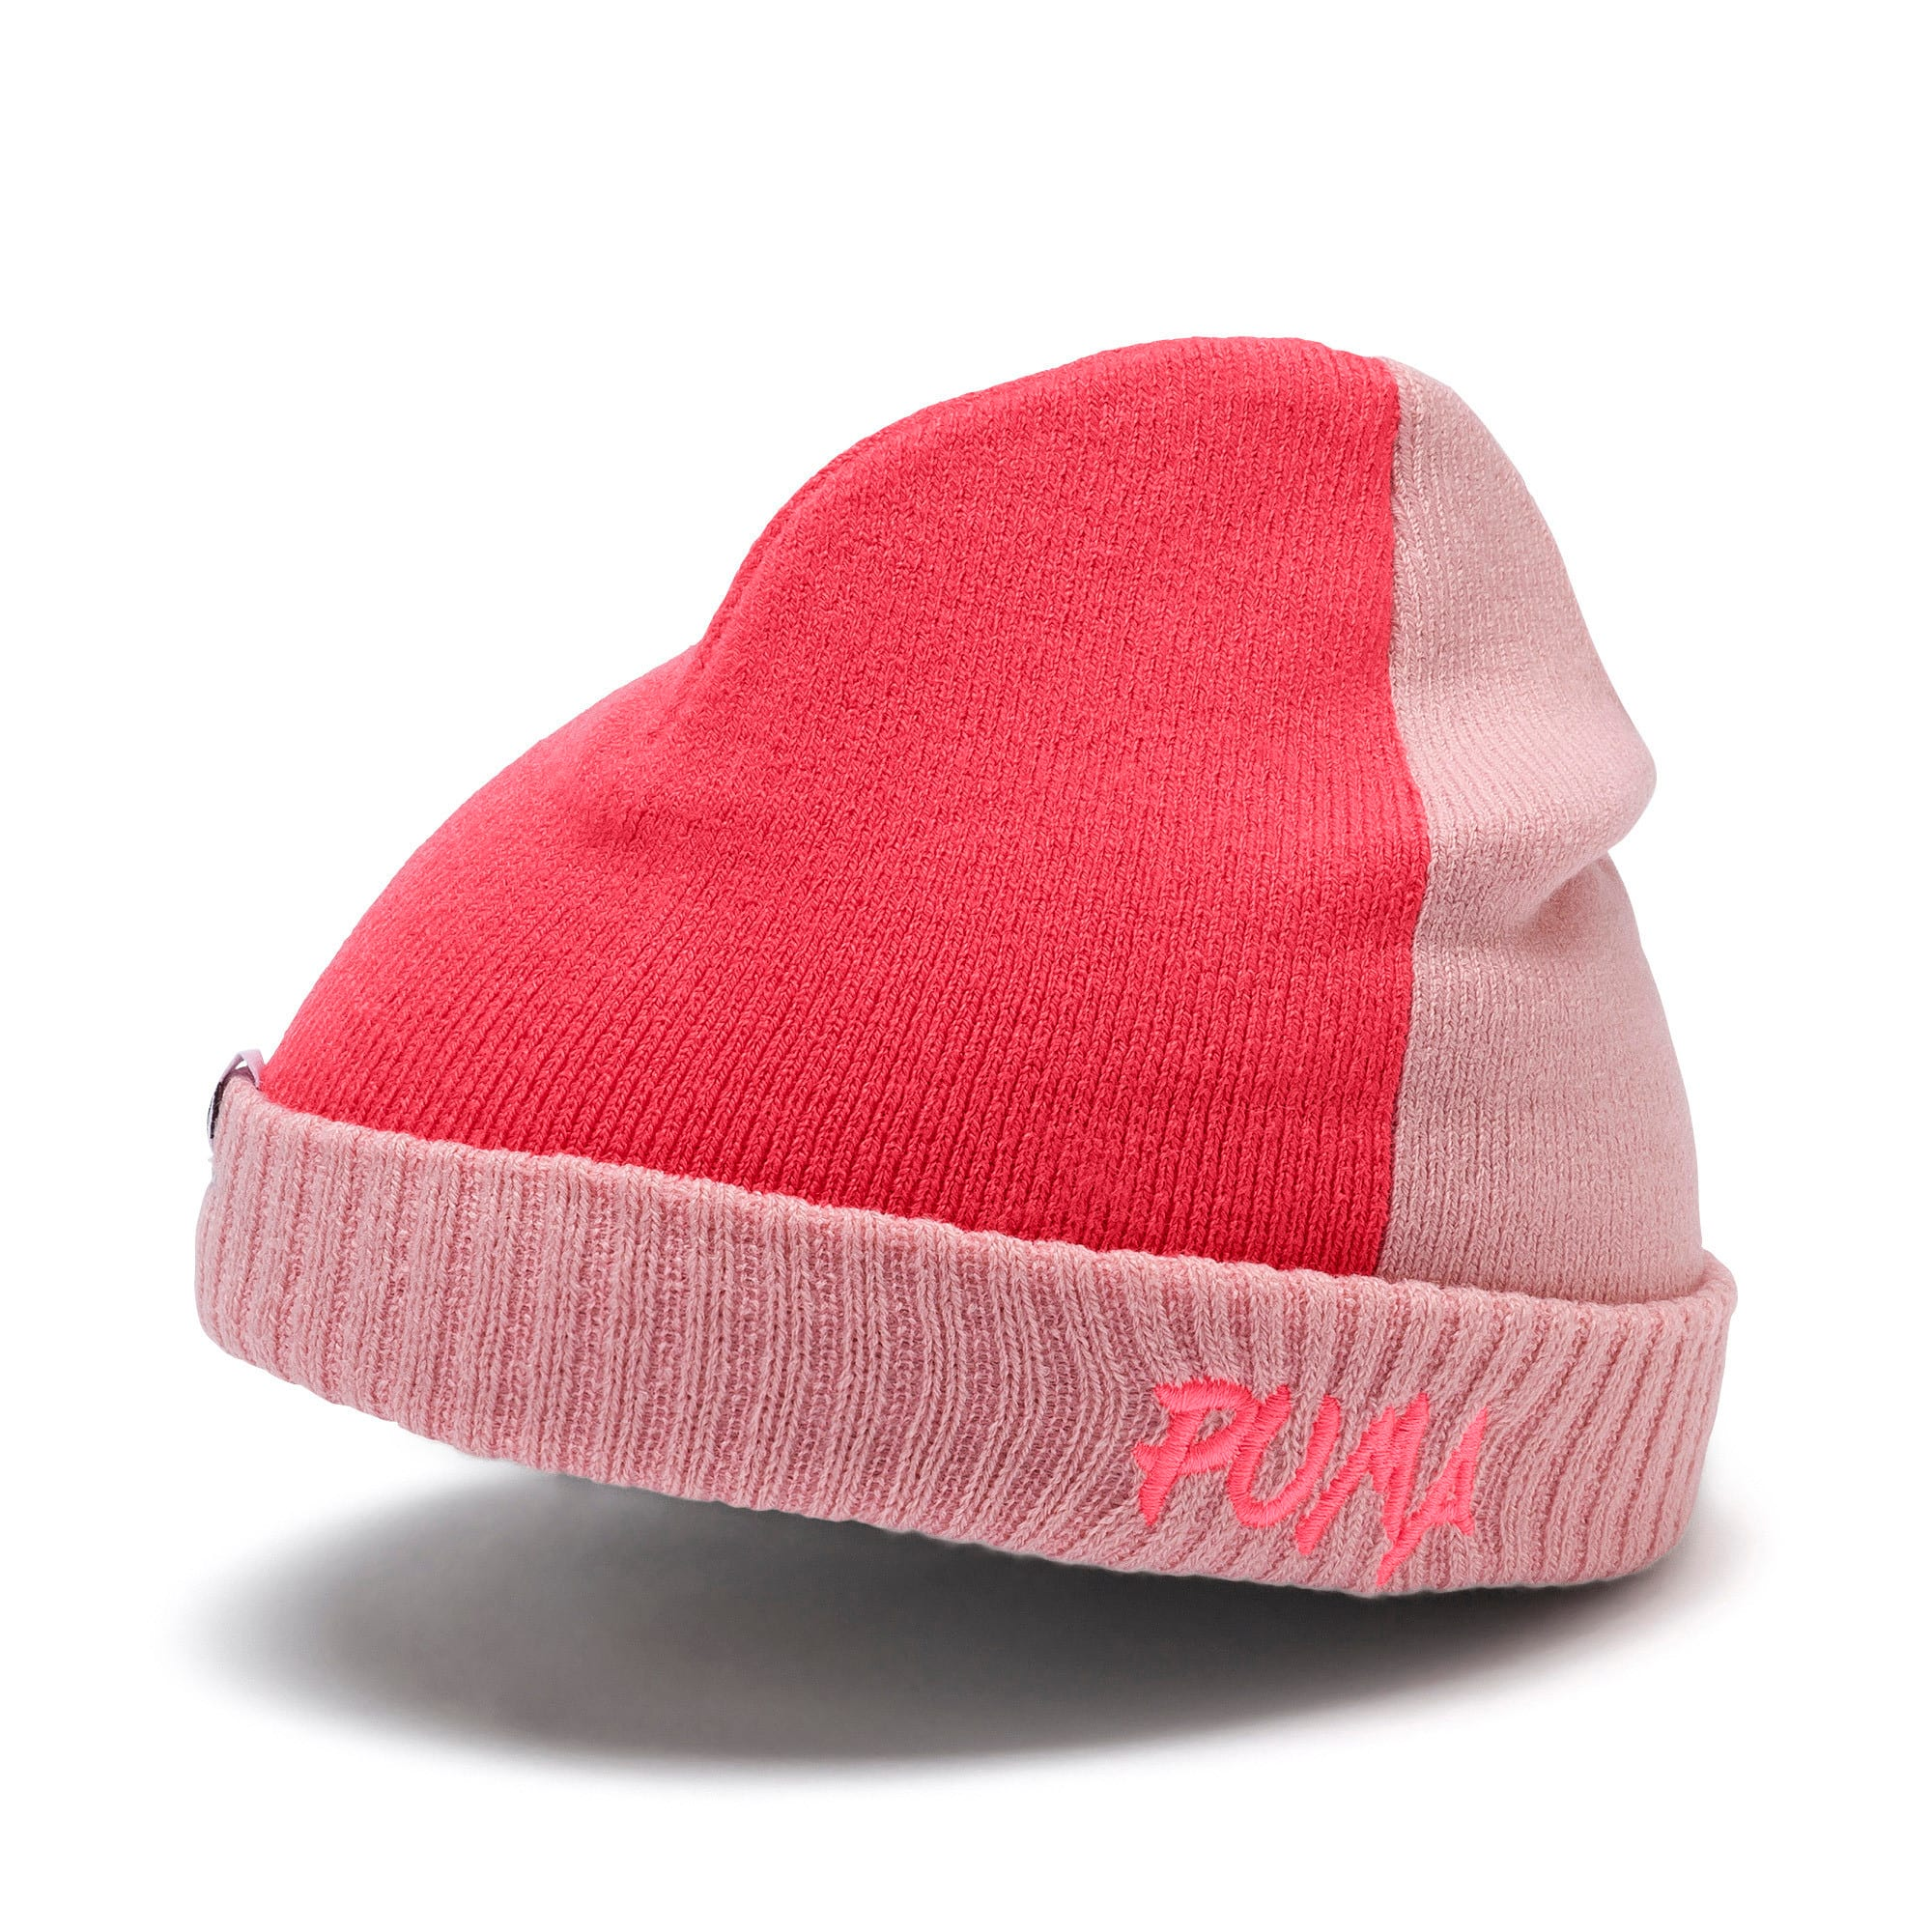 Thumbnail 1 of Minicats Kids' Beanie, Bridal Rose-Calypso Coral, medium